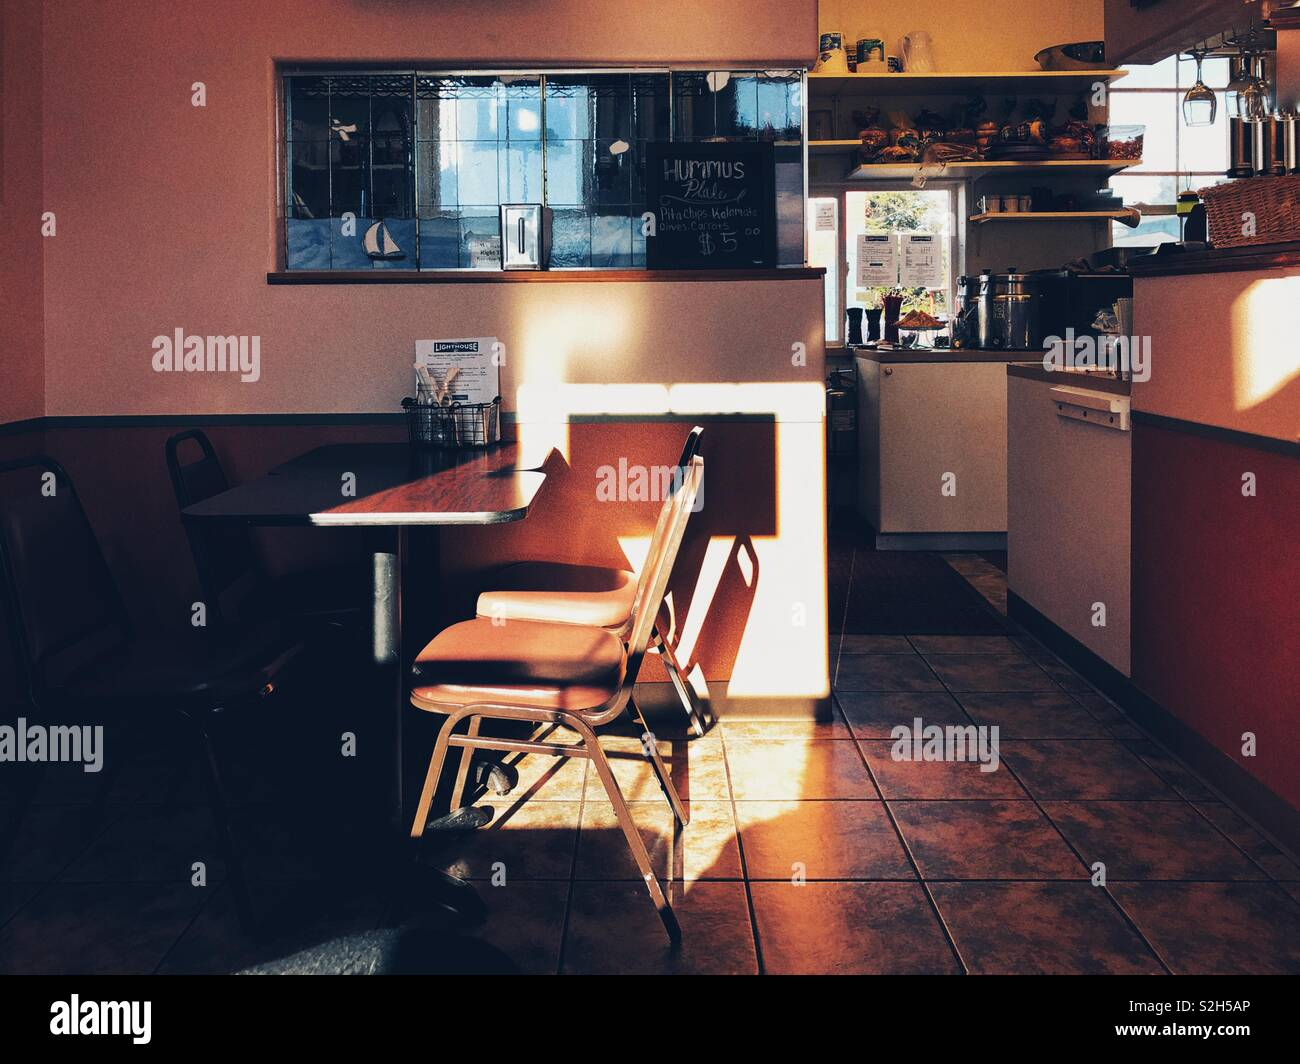 Small town cafe in winter light - Stock Image